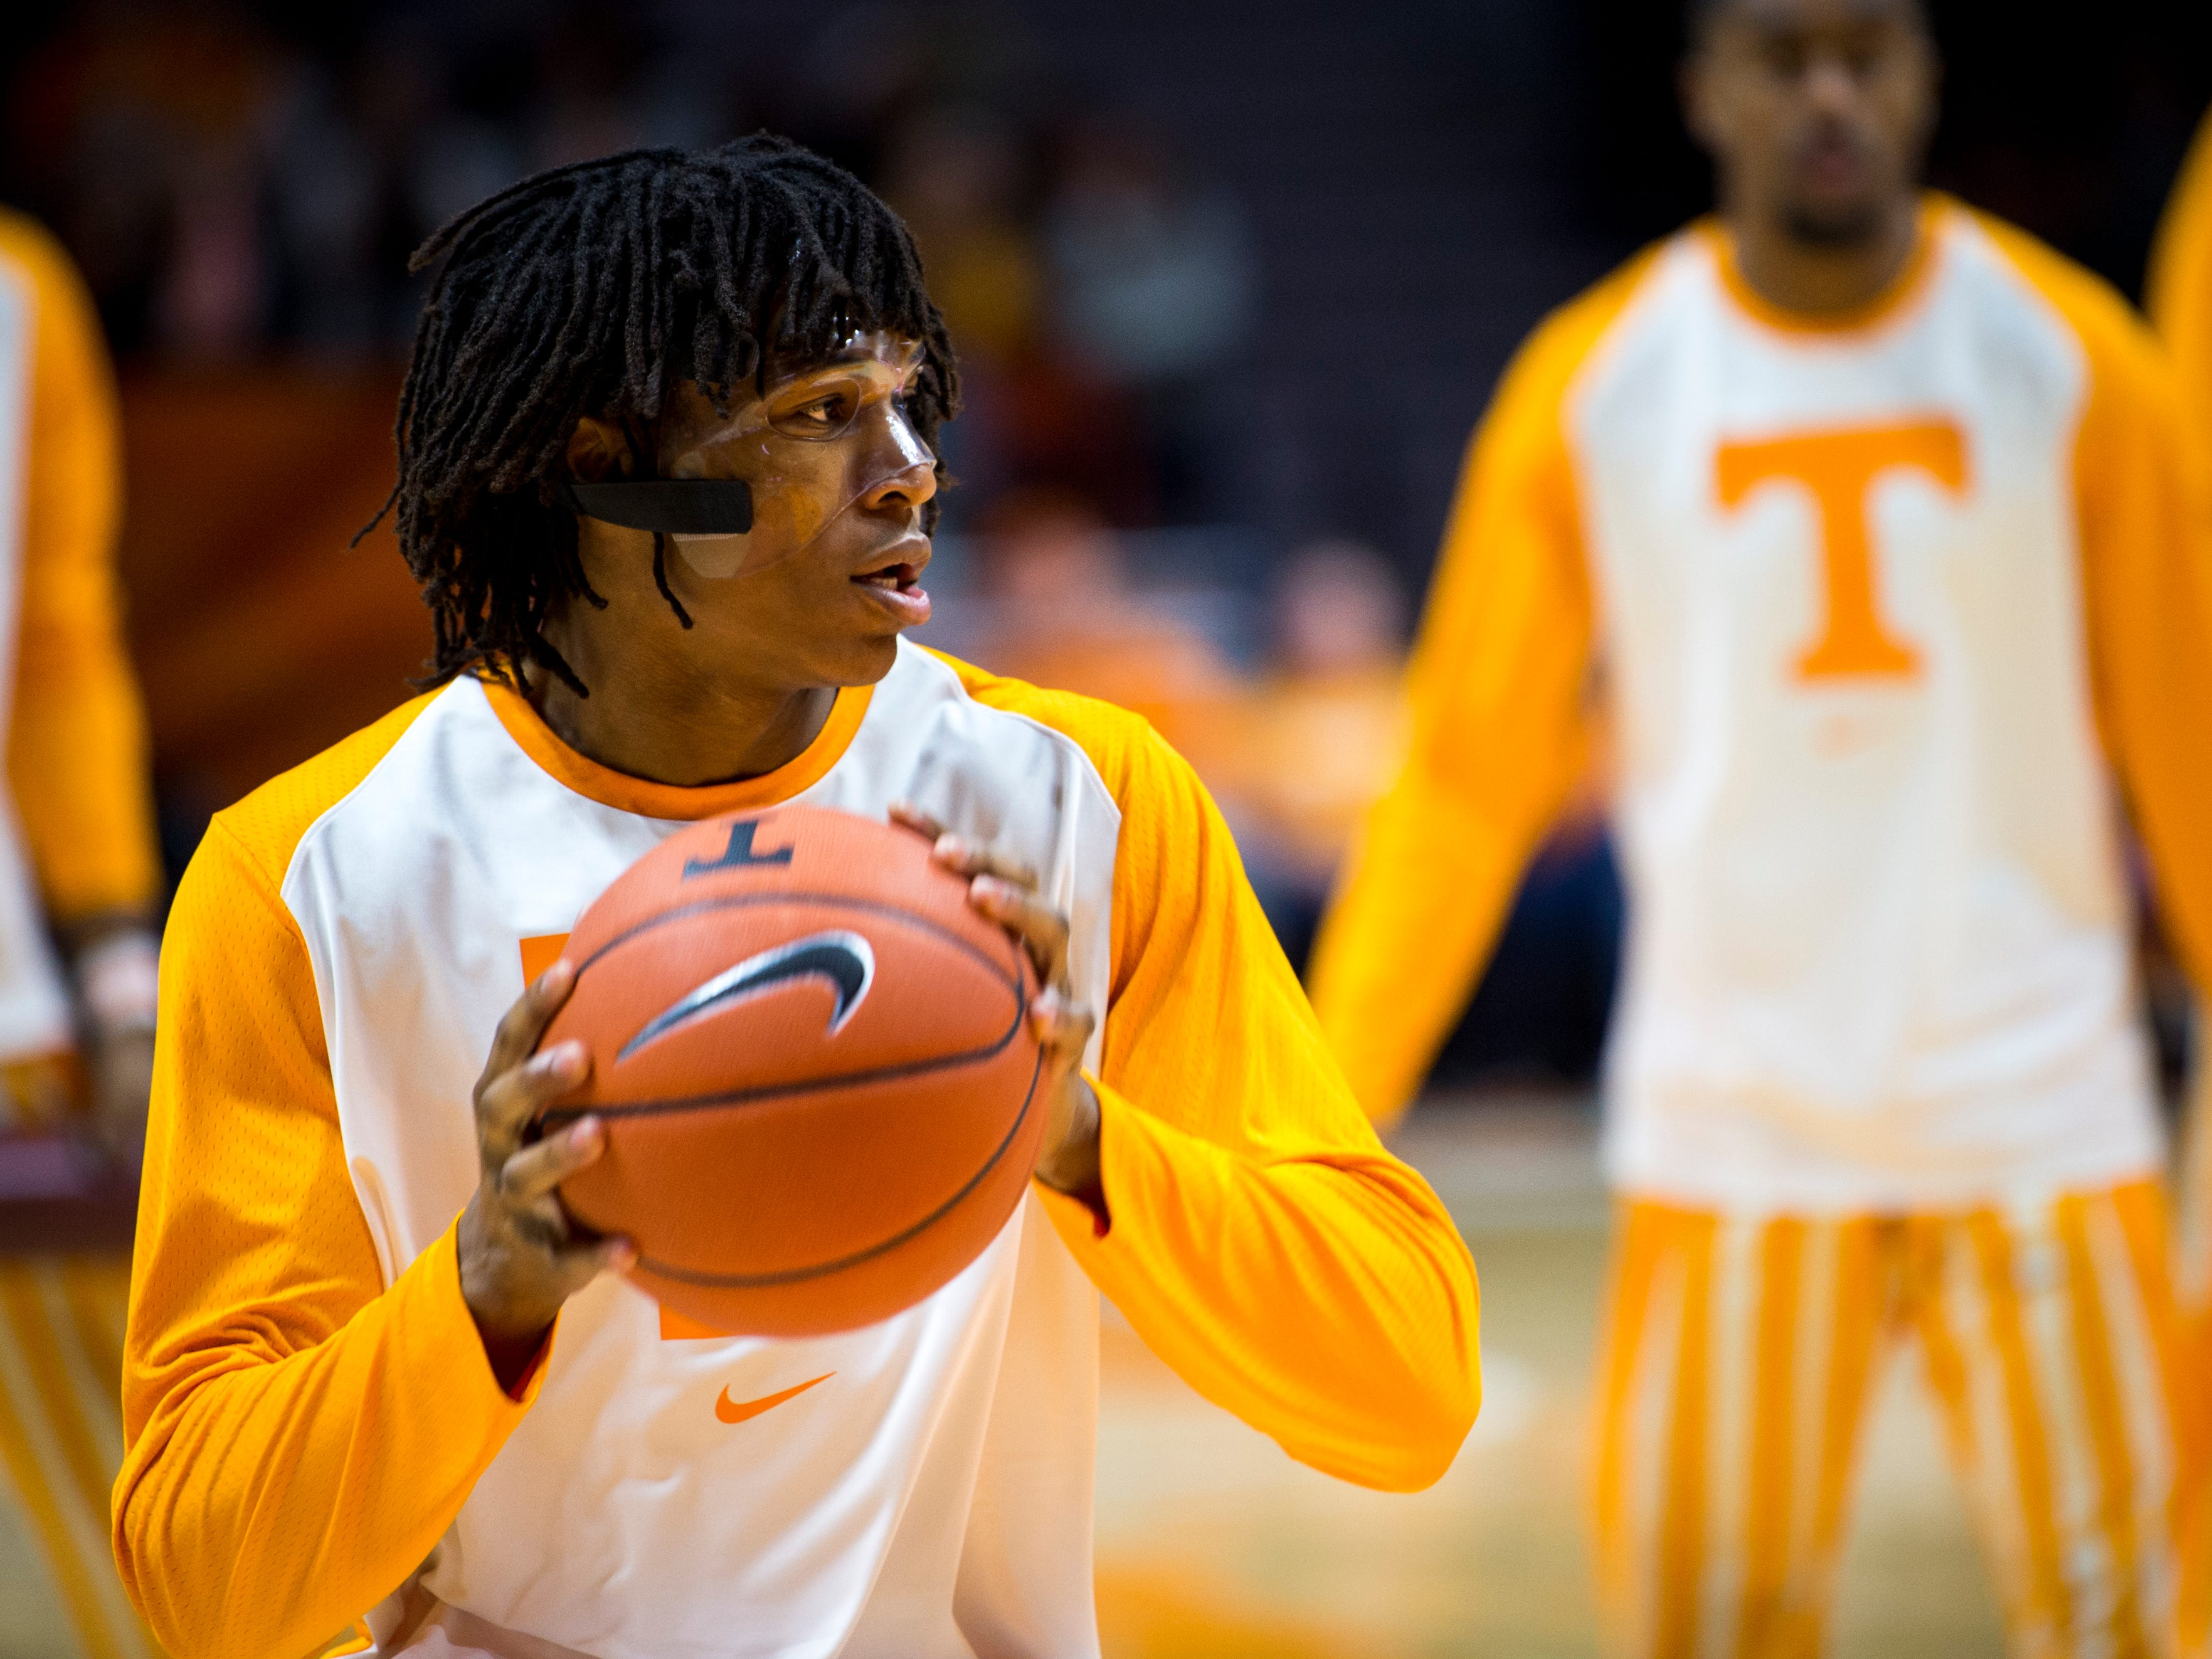 Tennessee guard/forward Yves Pons (35) wears a face mask before Tennessee's home SEC game against South Carolina at Thompson-Boling Arena in Knoxville on Wednesday, February 13, 2019.